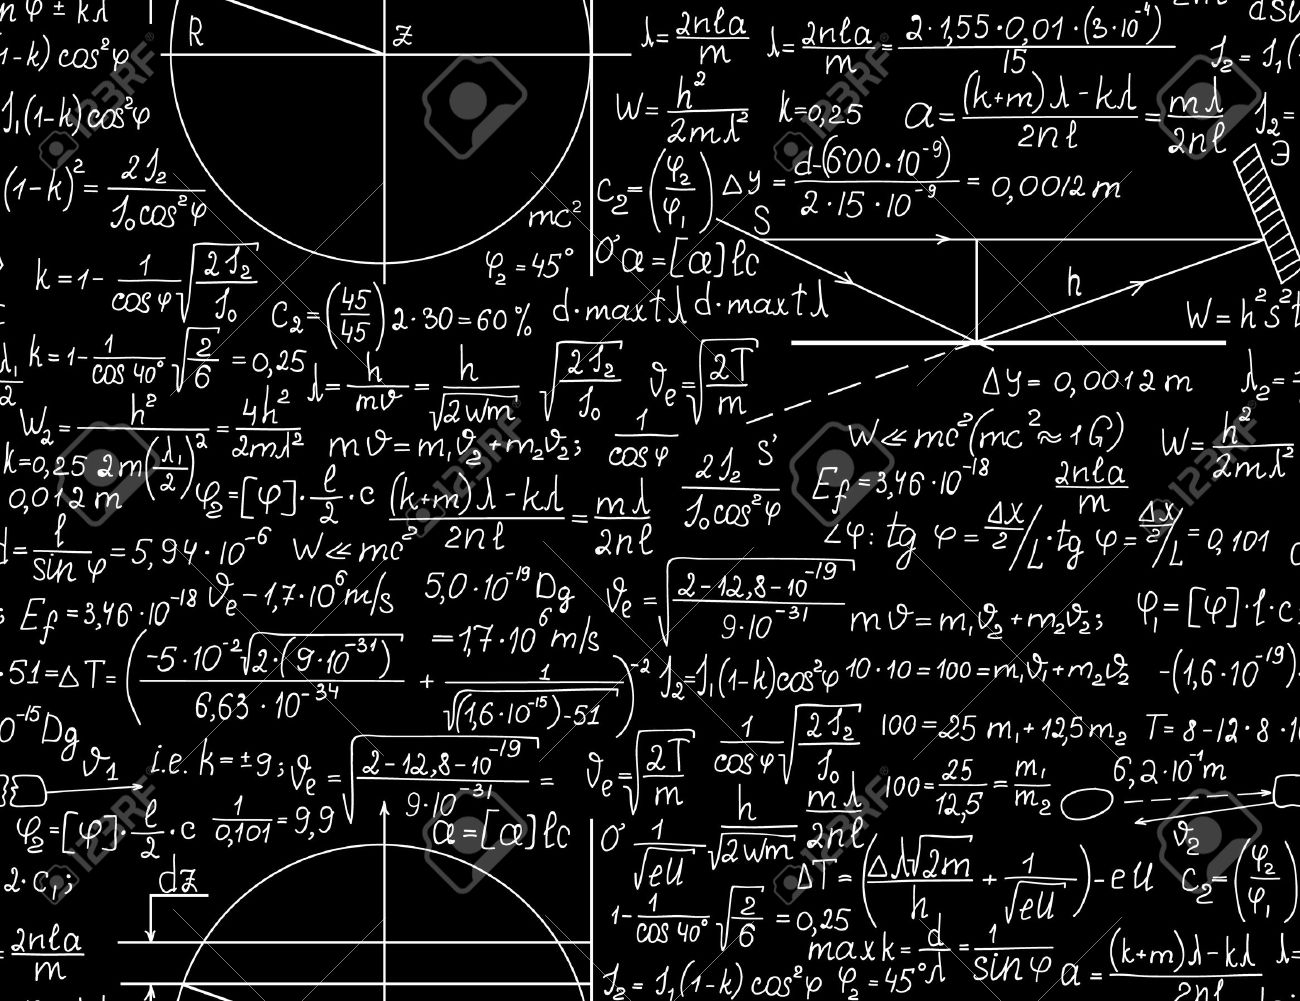 26608292-beautiful-physical-seamless-pattern-with-plots-and-equations-you-can-use-any-color-of-background.jpg